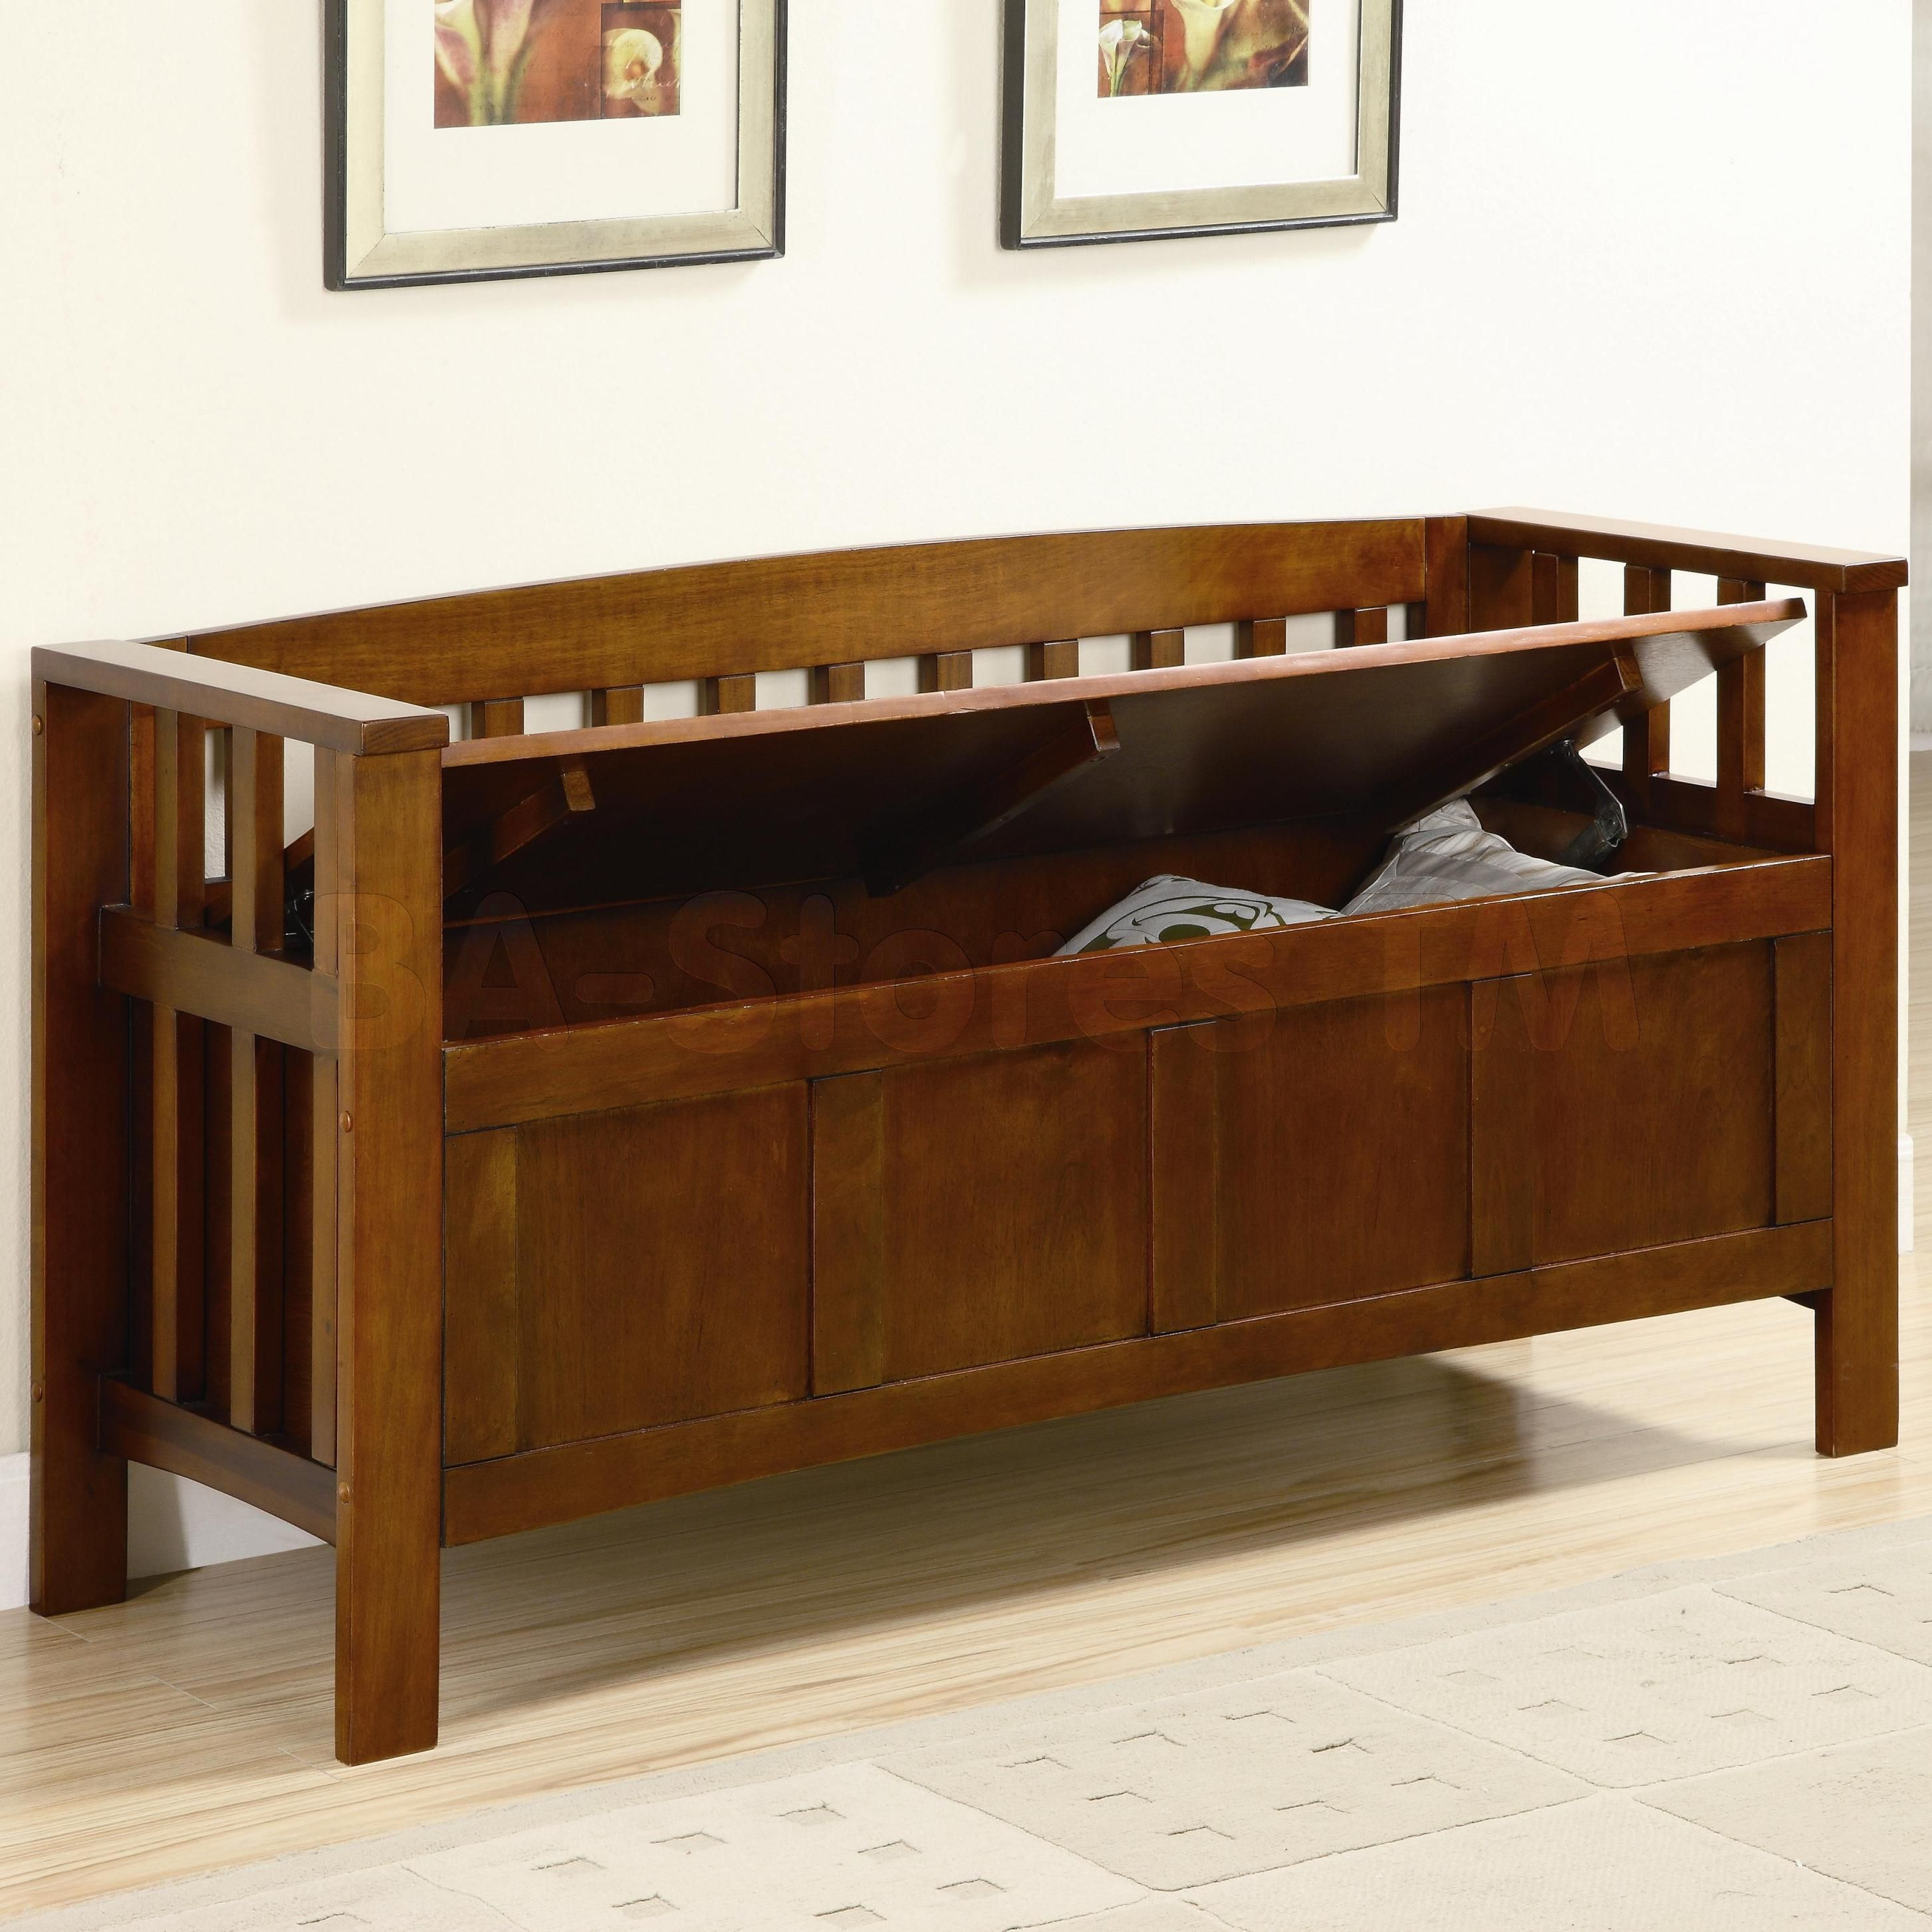 Pine Crest Mission Style Solid Wood Bench w// 3 Storage Drawers Under Seat in Oak